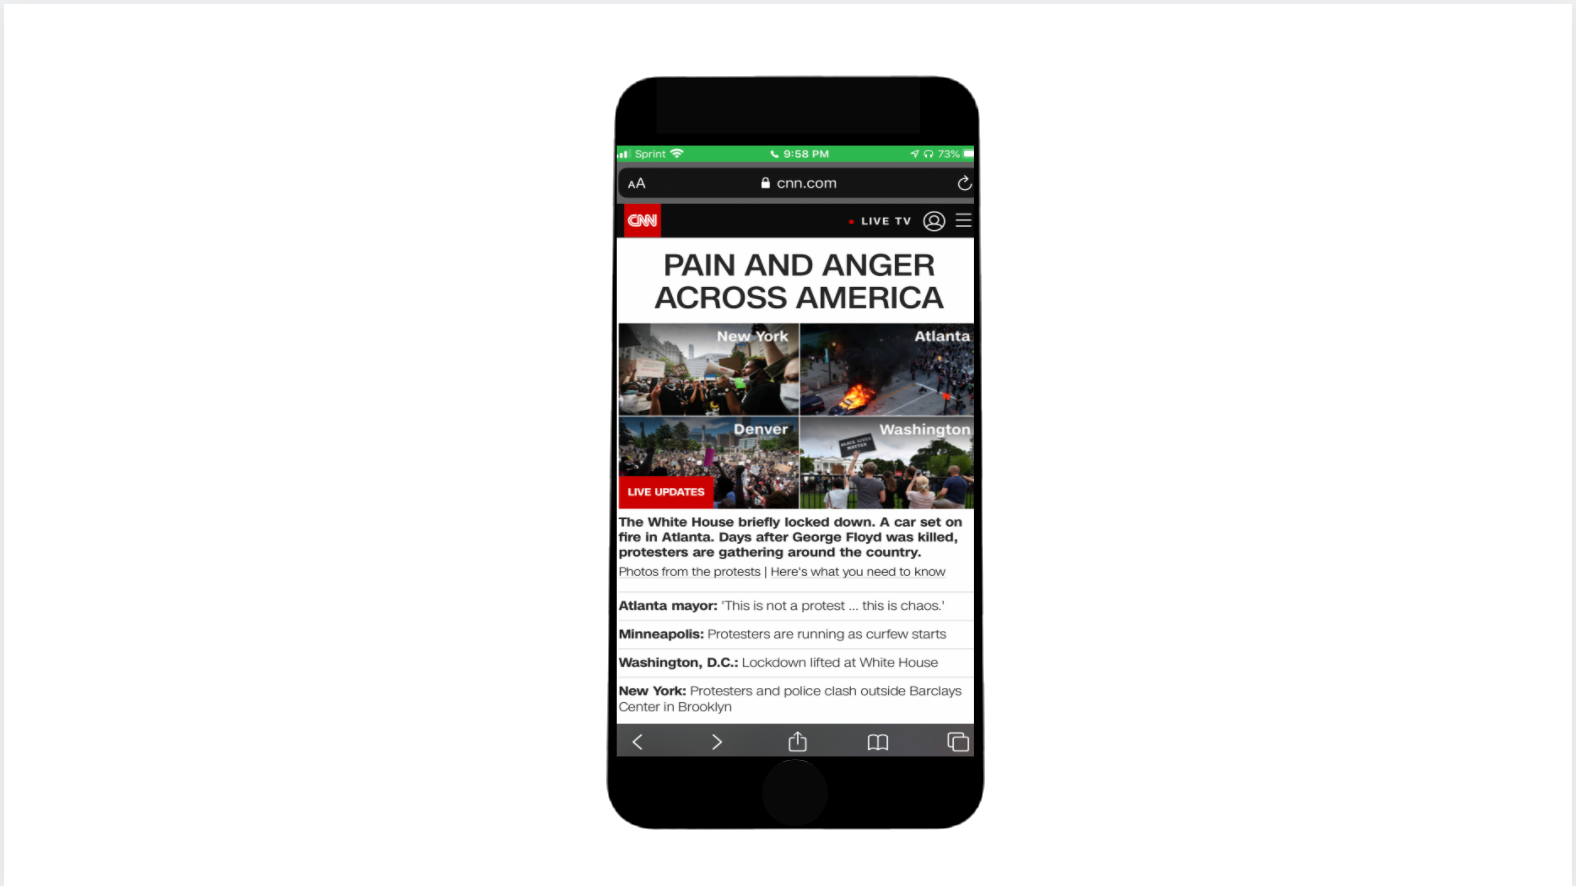 Led homepage and alert programming capturing CNN's live and breaking news coverage of the George Floyd protests across the US